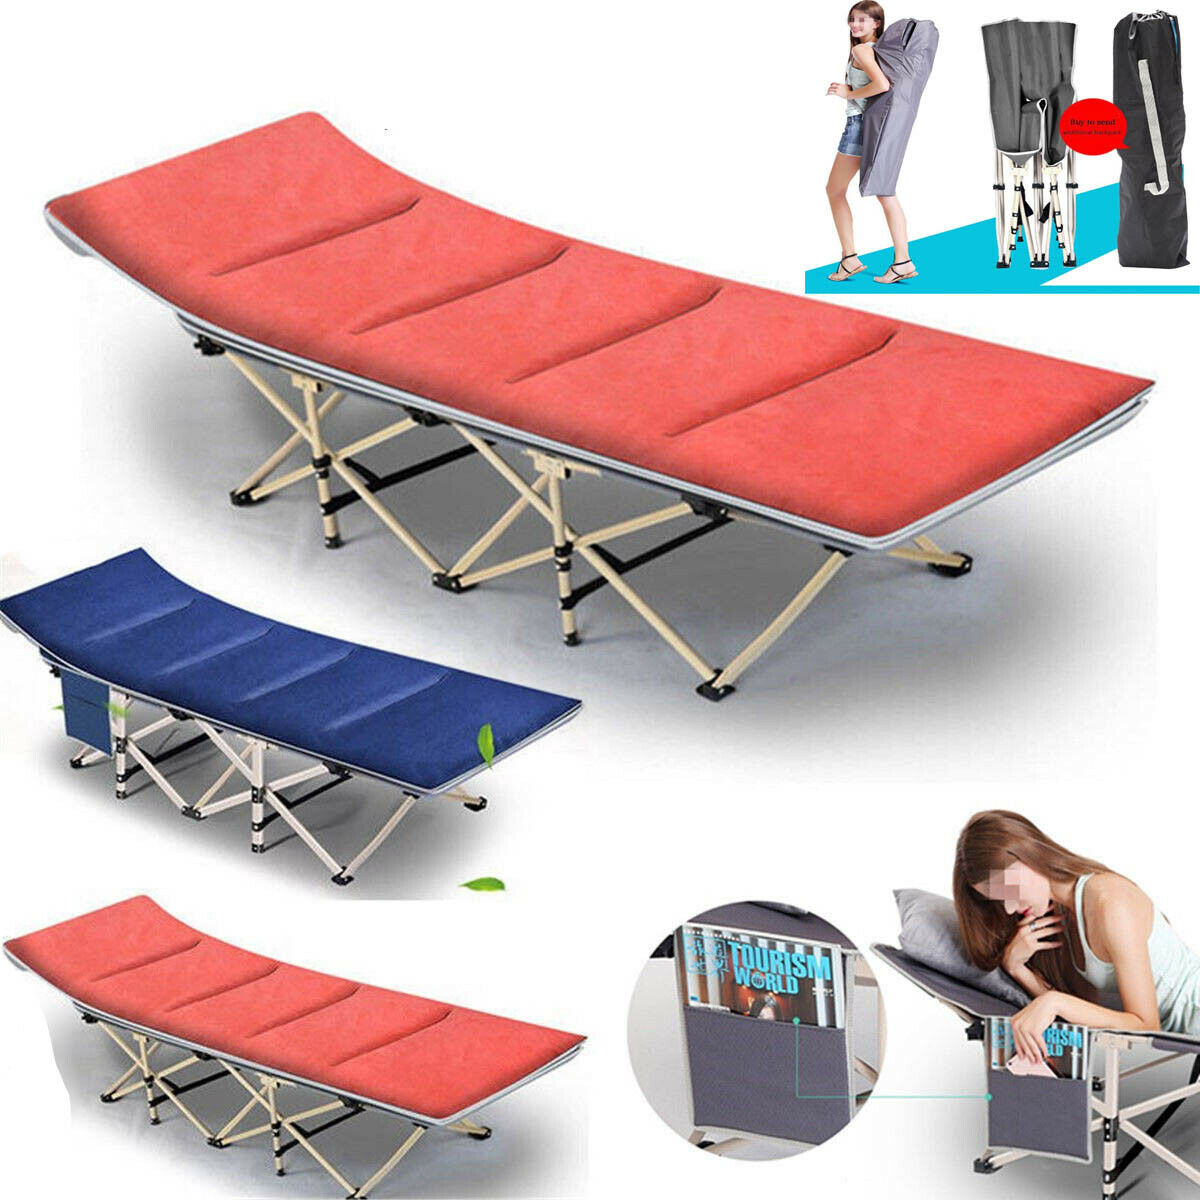 Portable Folding Bed Stable Camping Cot Outdoor Travel Sleep